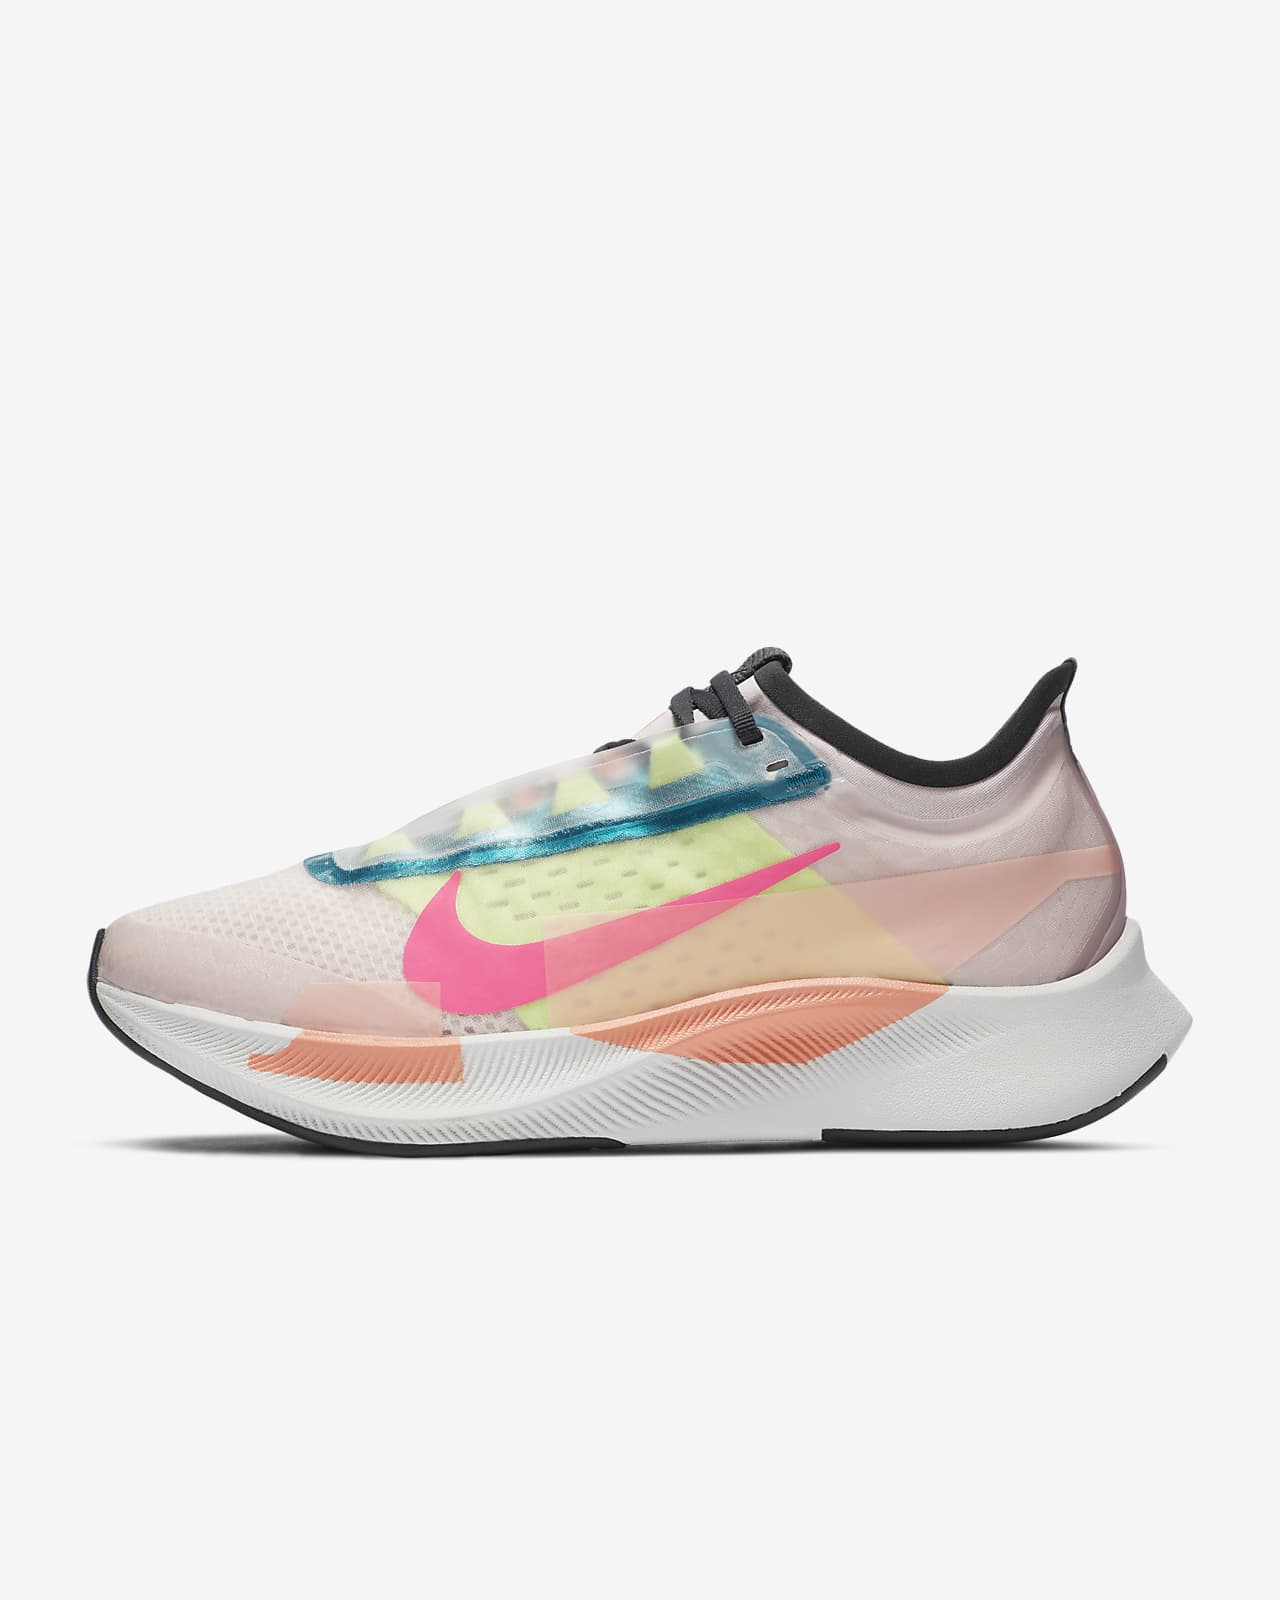 Nike Zoom Fly 3 Premium Women's Running Shoe